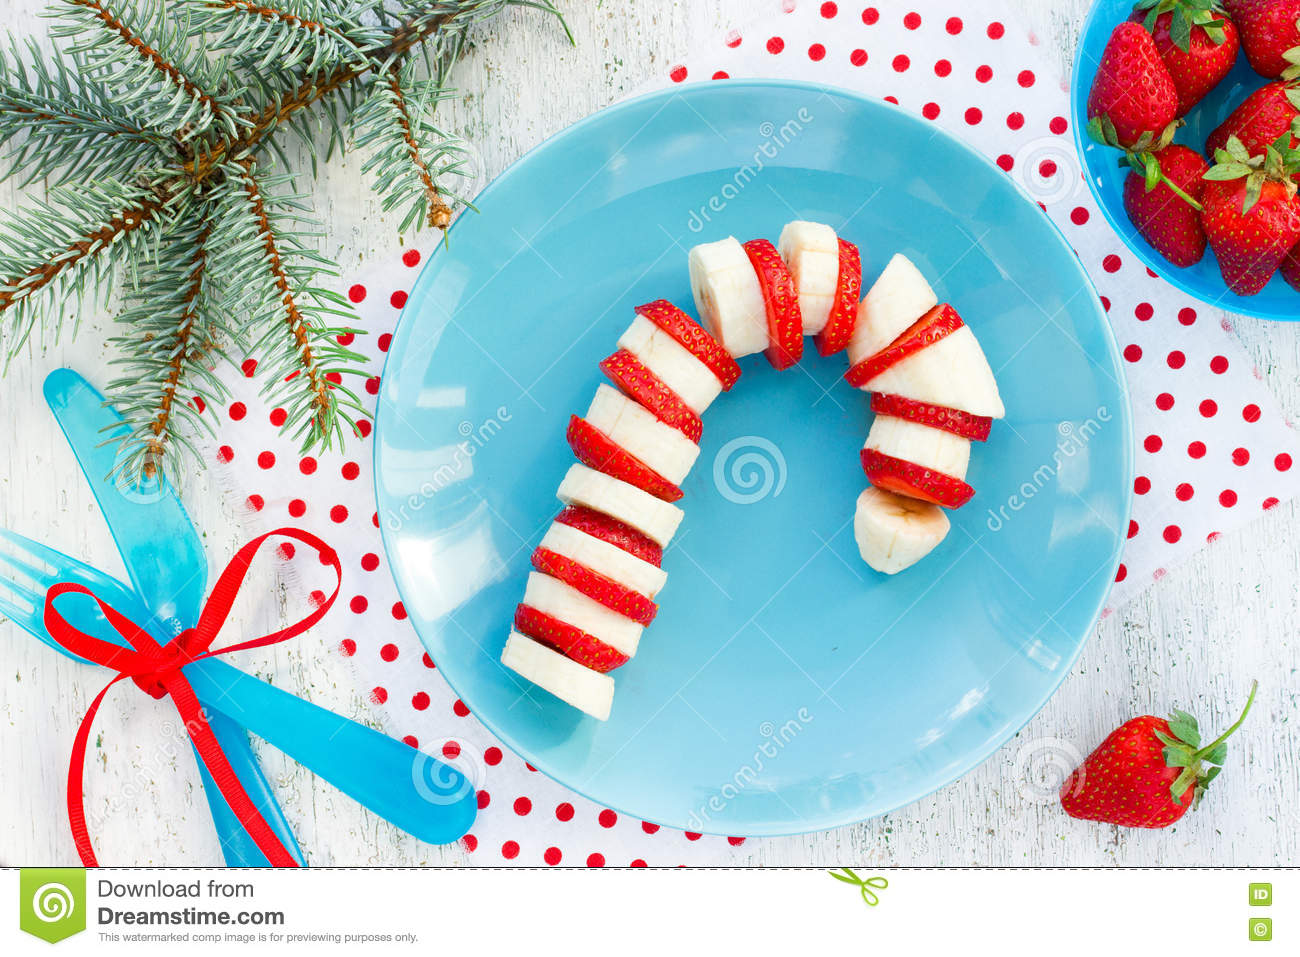 Funny Edible Candy Cane - Banana And Strawberry Candy Cane On Pl ...